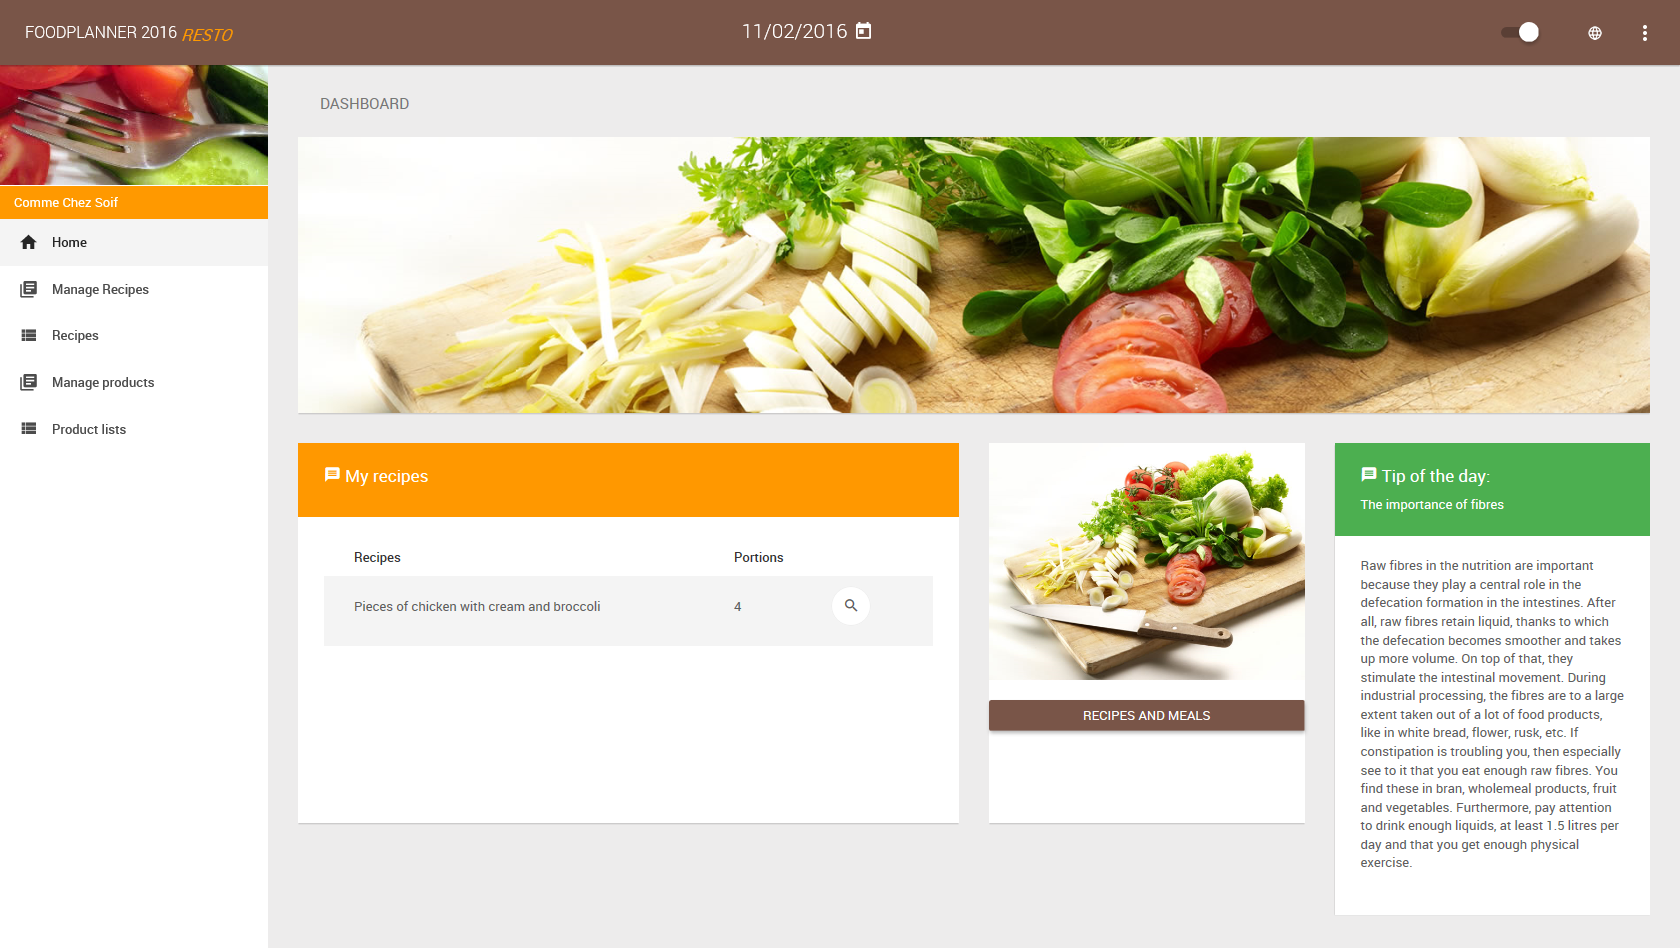 The Nubel Foodplanner RESTO - Dashboard